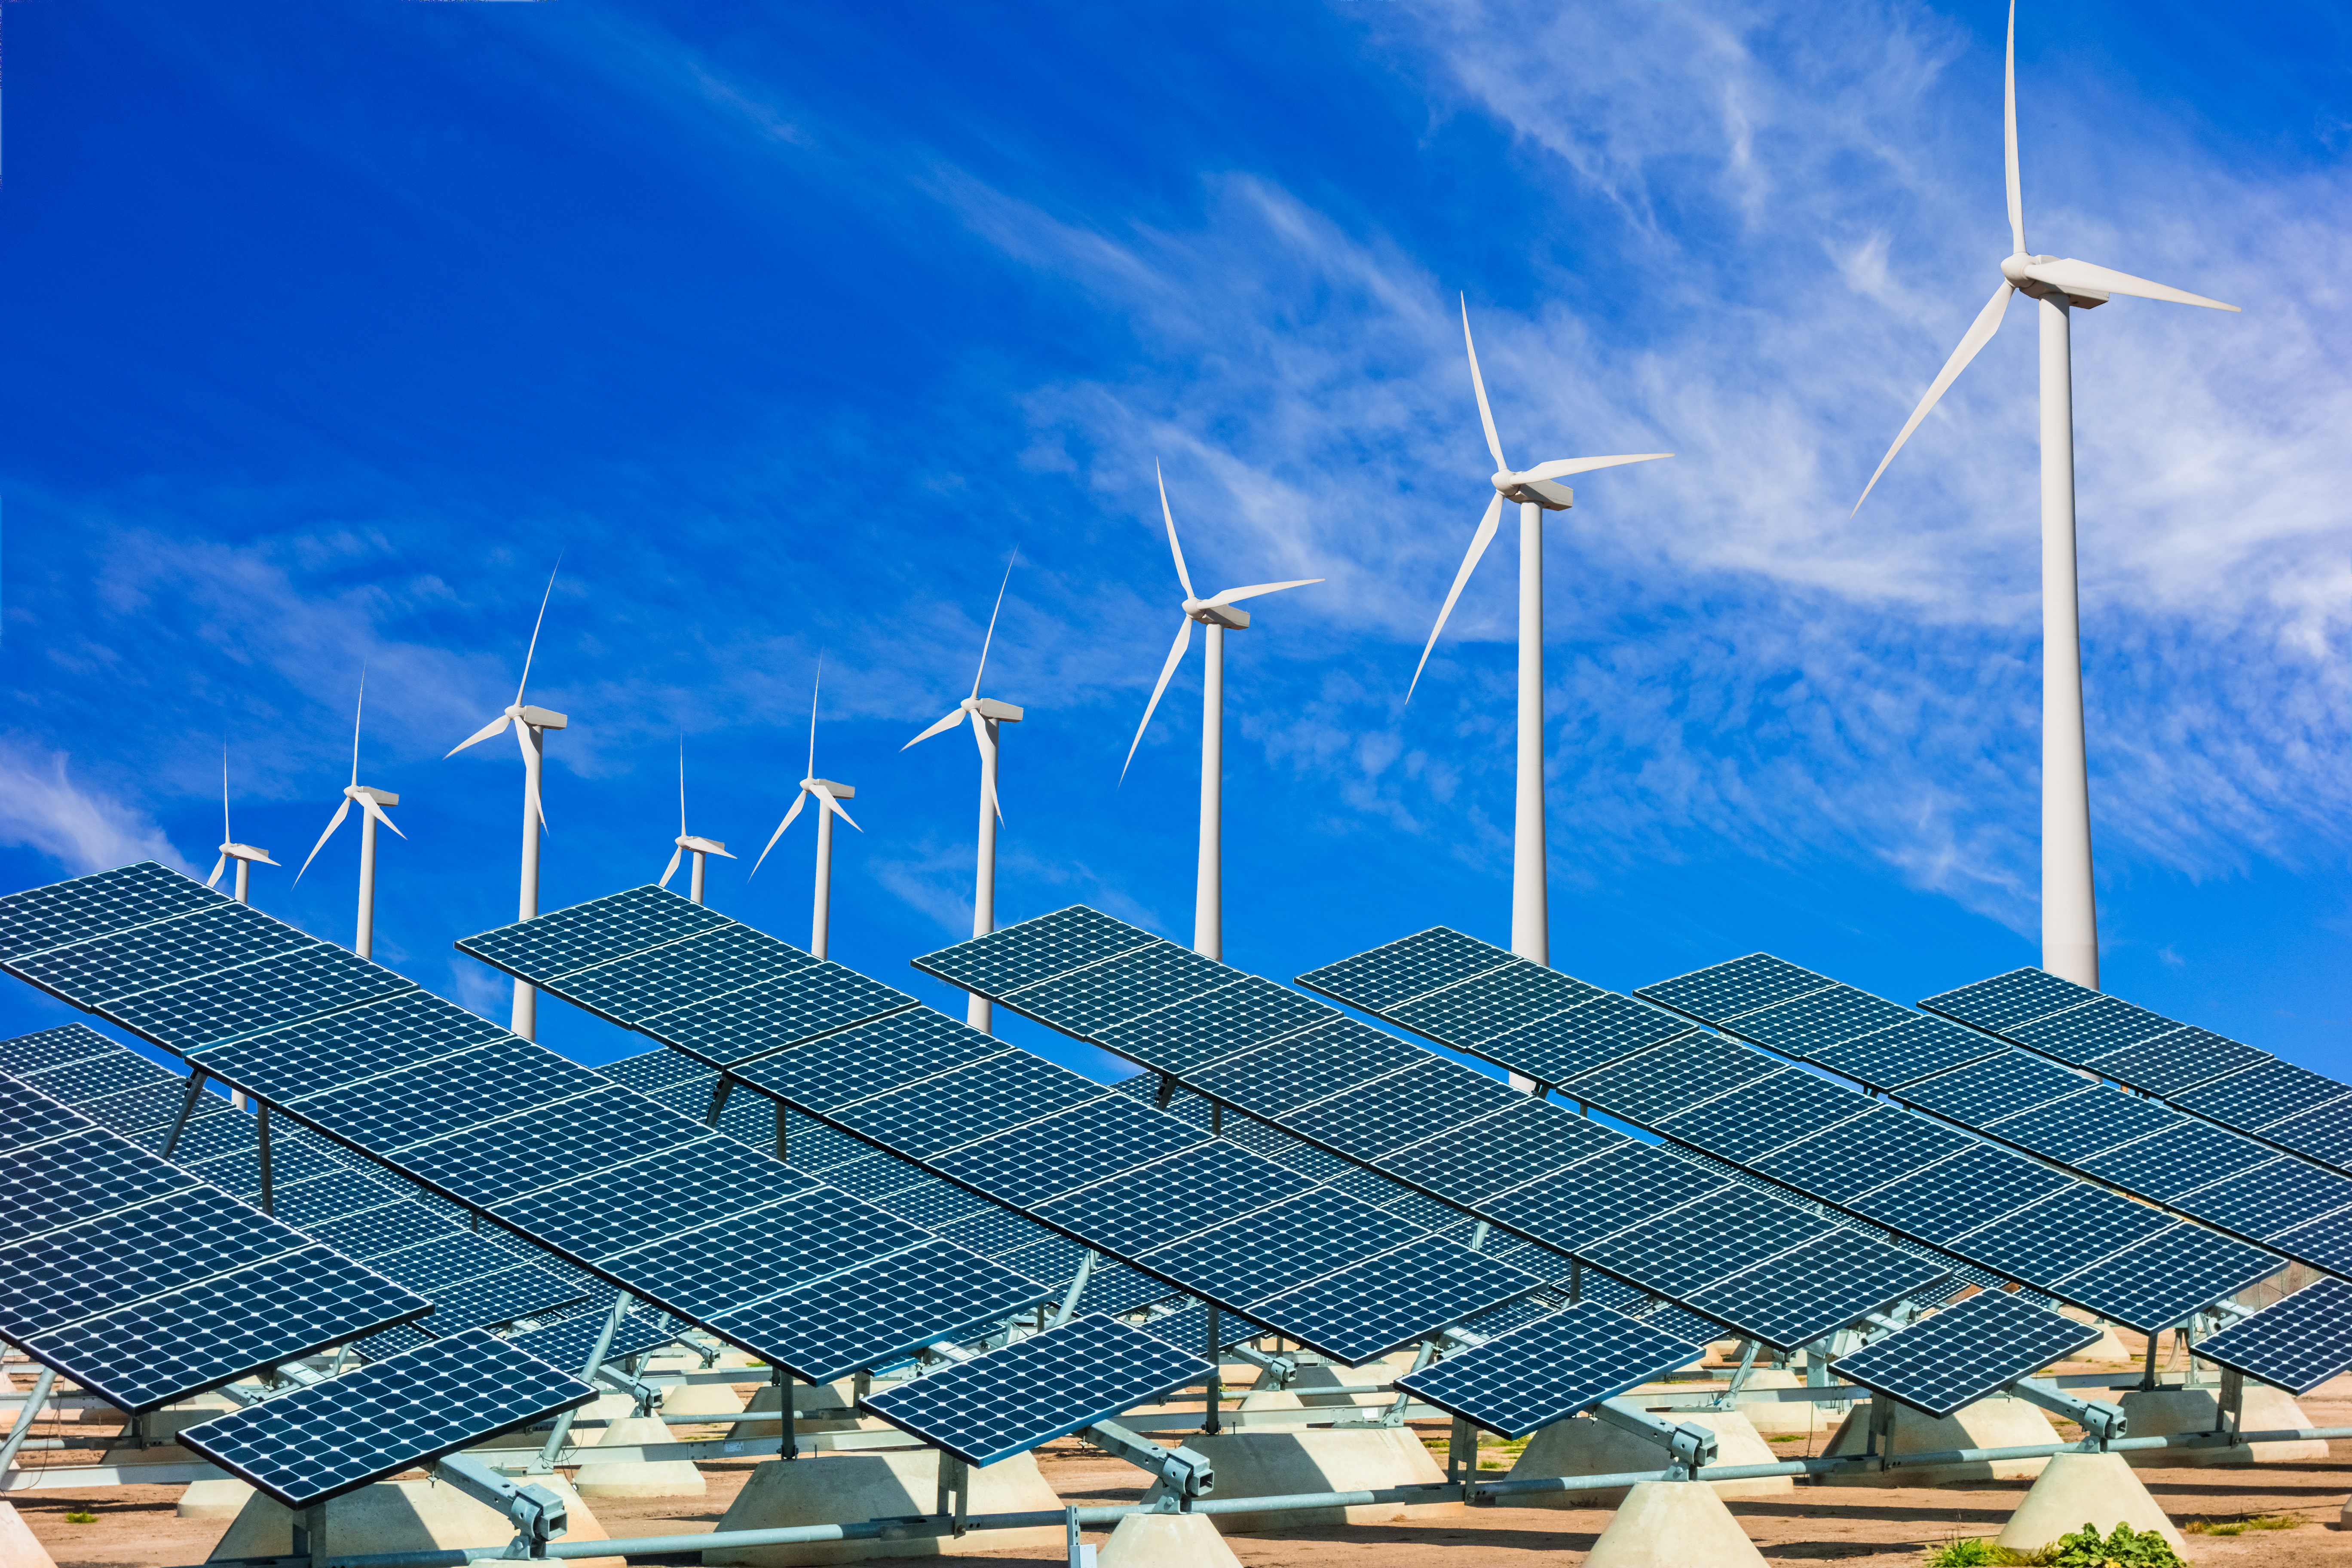 Wind turbines and solar panels making green energy